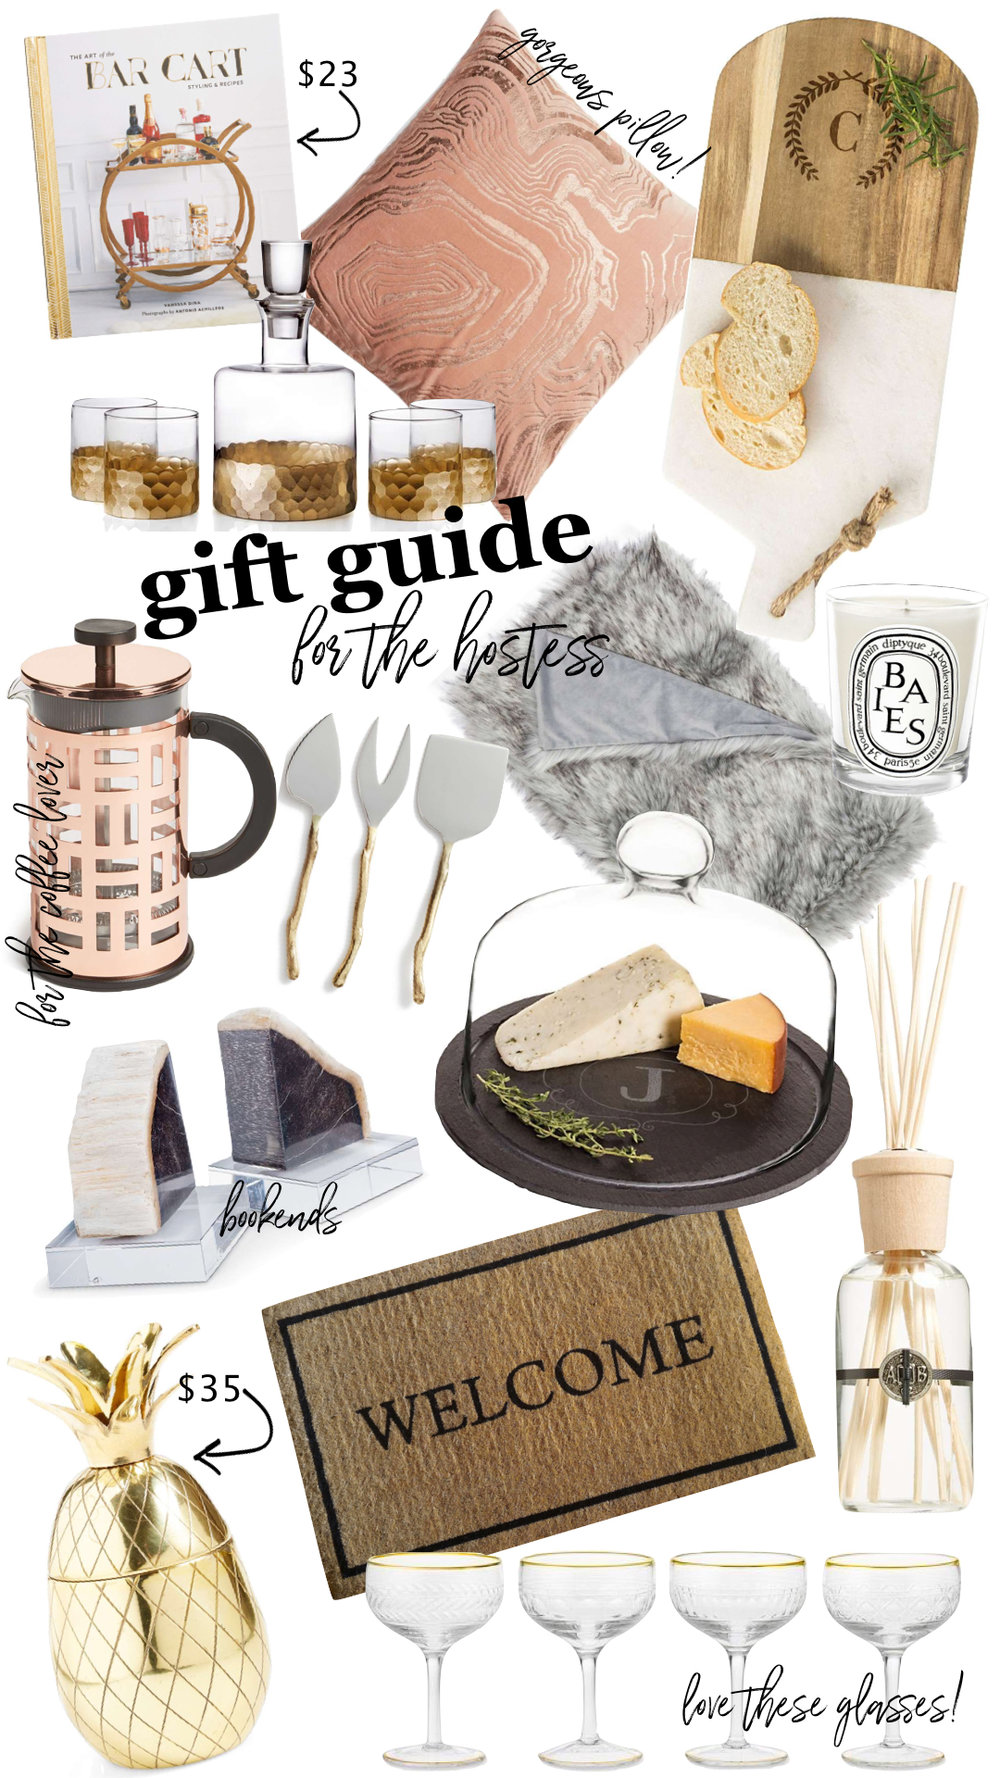 GIFT GUIDE FOR THE HOSTESS  -